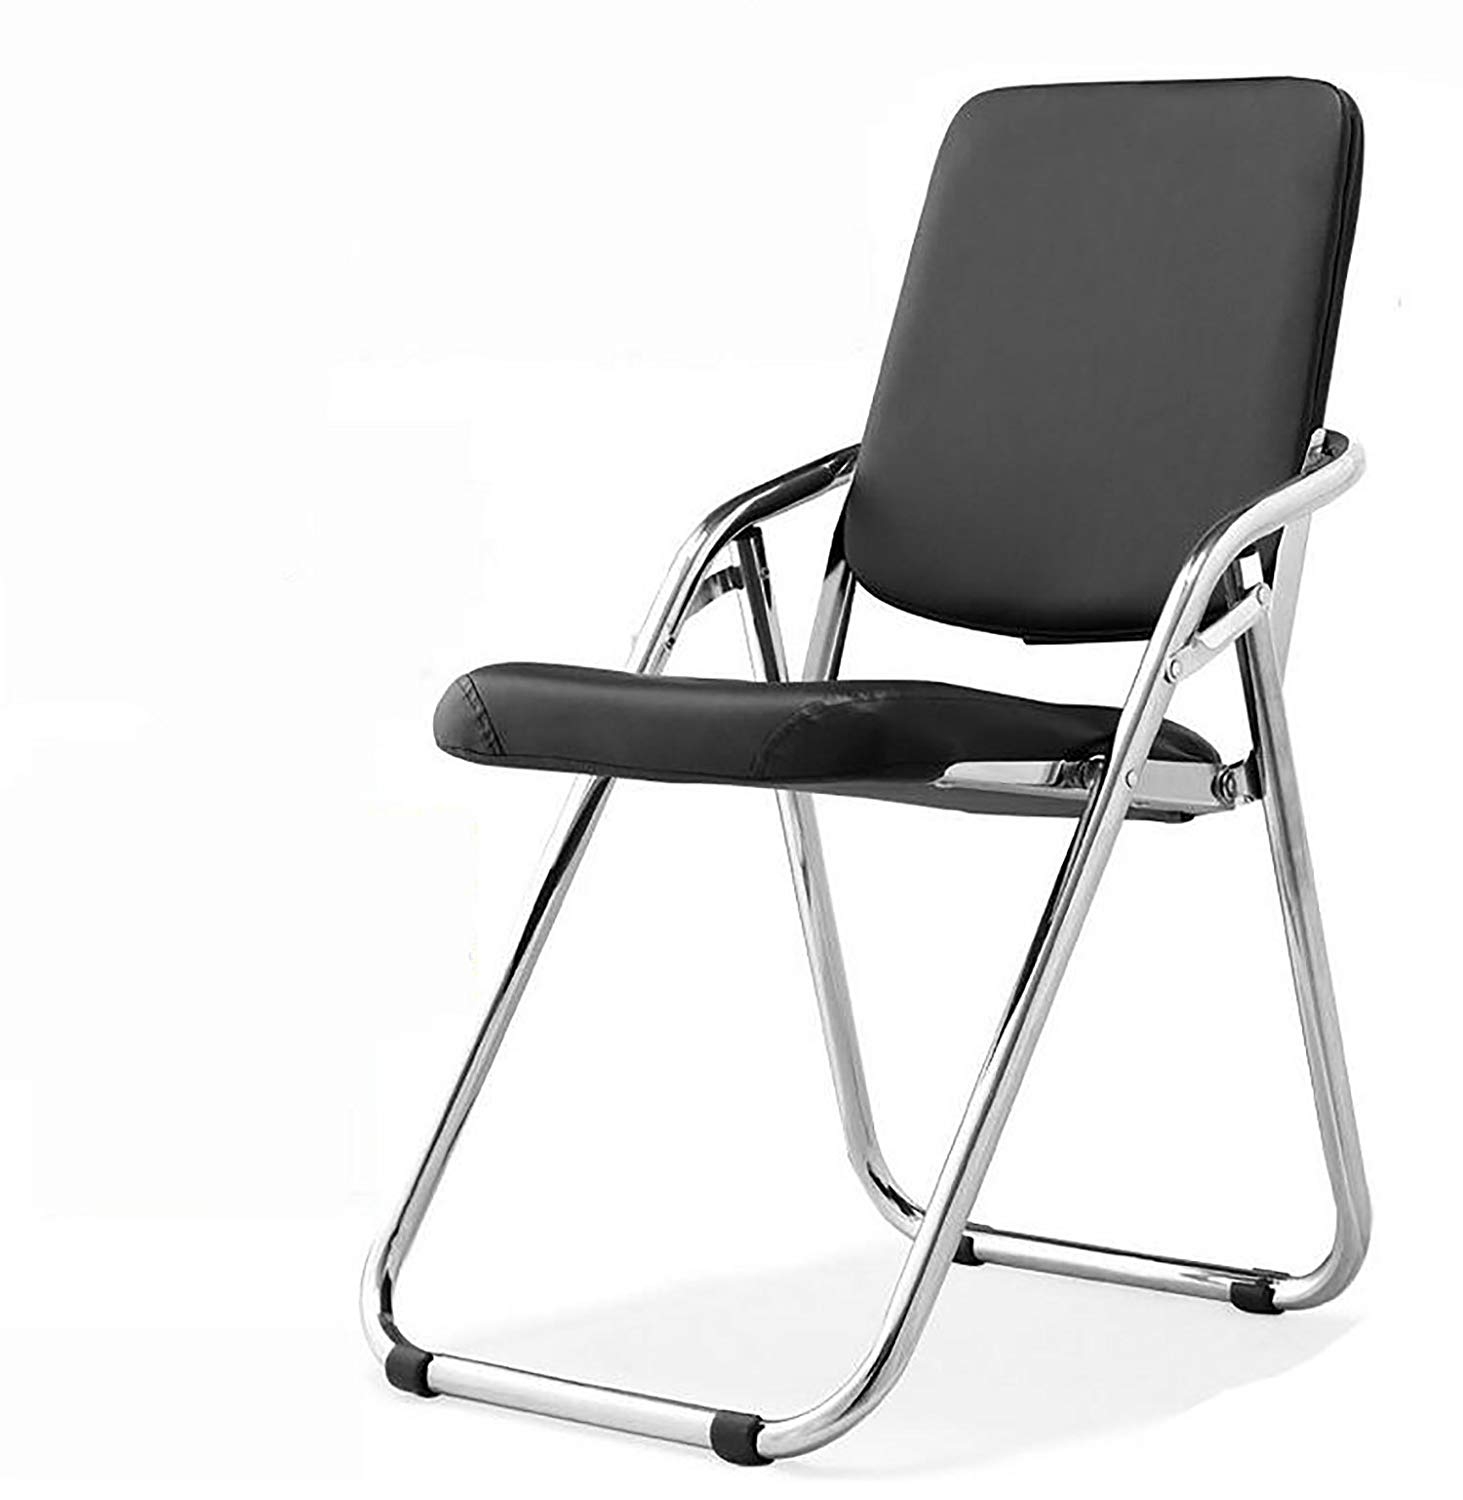 JHZDY Folding Chair Folding Training Chair Meeting Room Chair Tutoring Training Chair Performance Hall Seat Steel Pipe Foot Chair Black Leather Chair (Color : 1#)